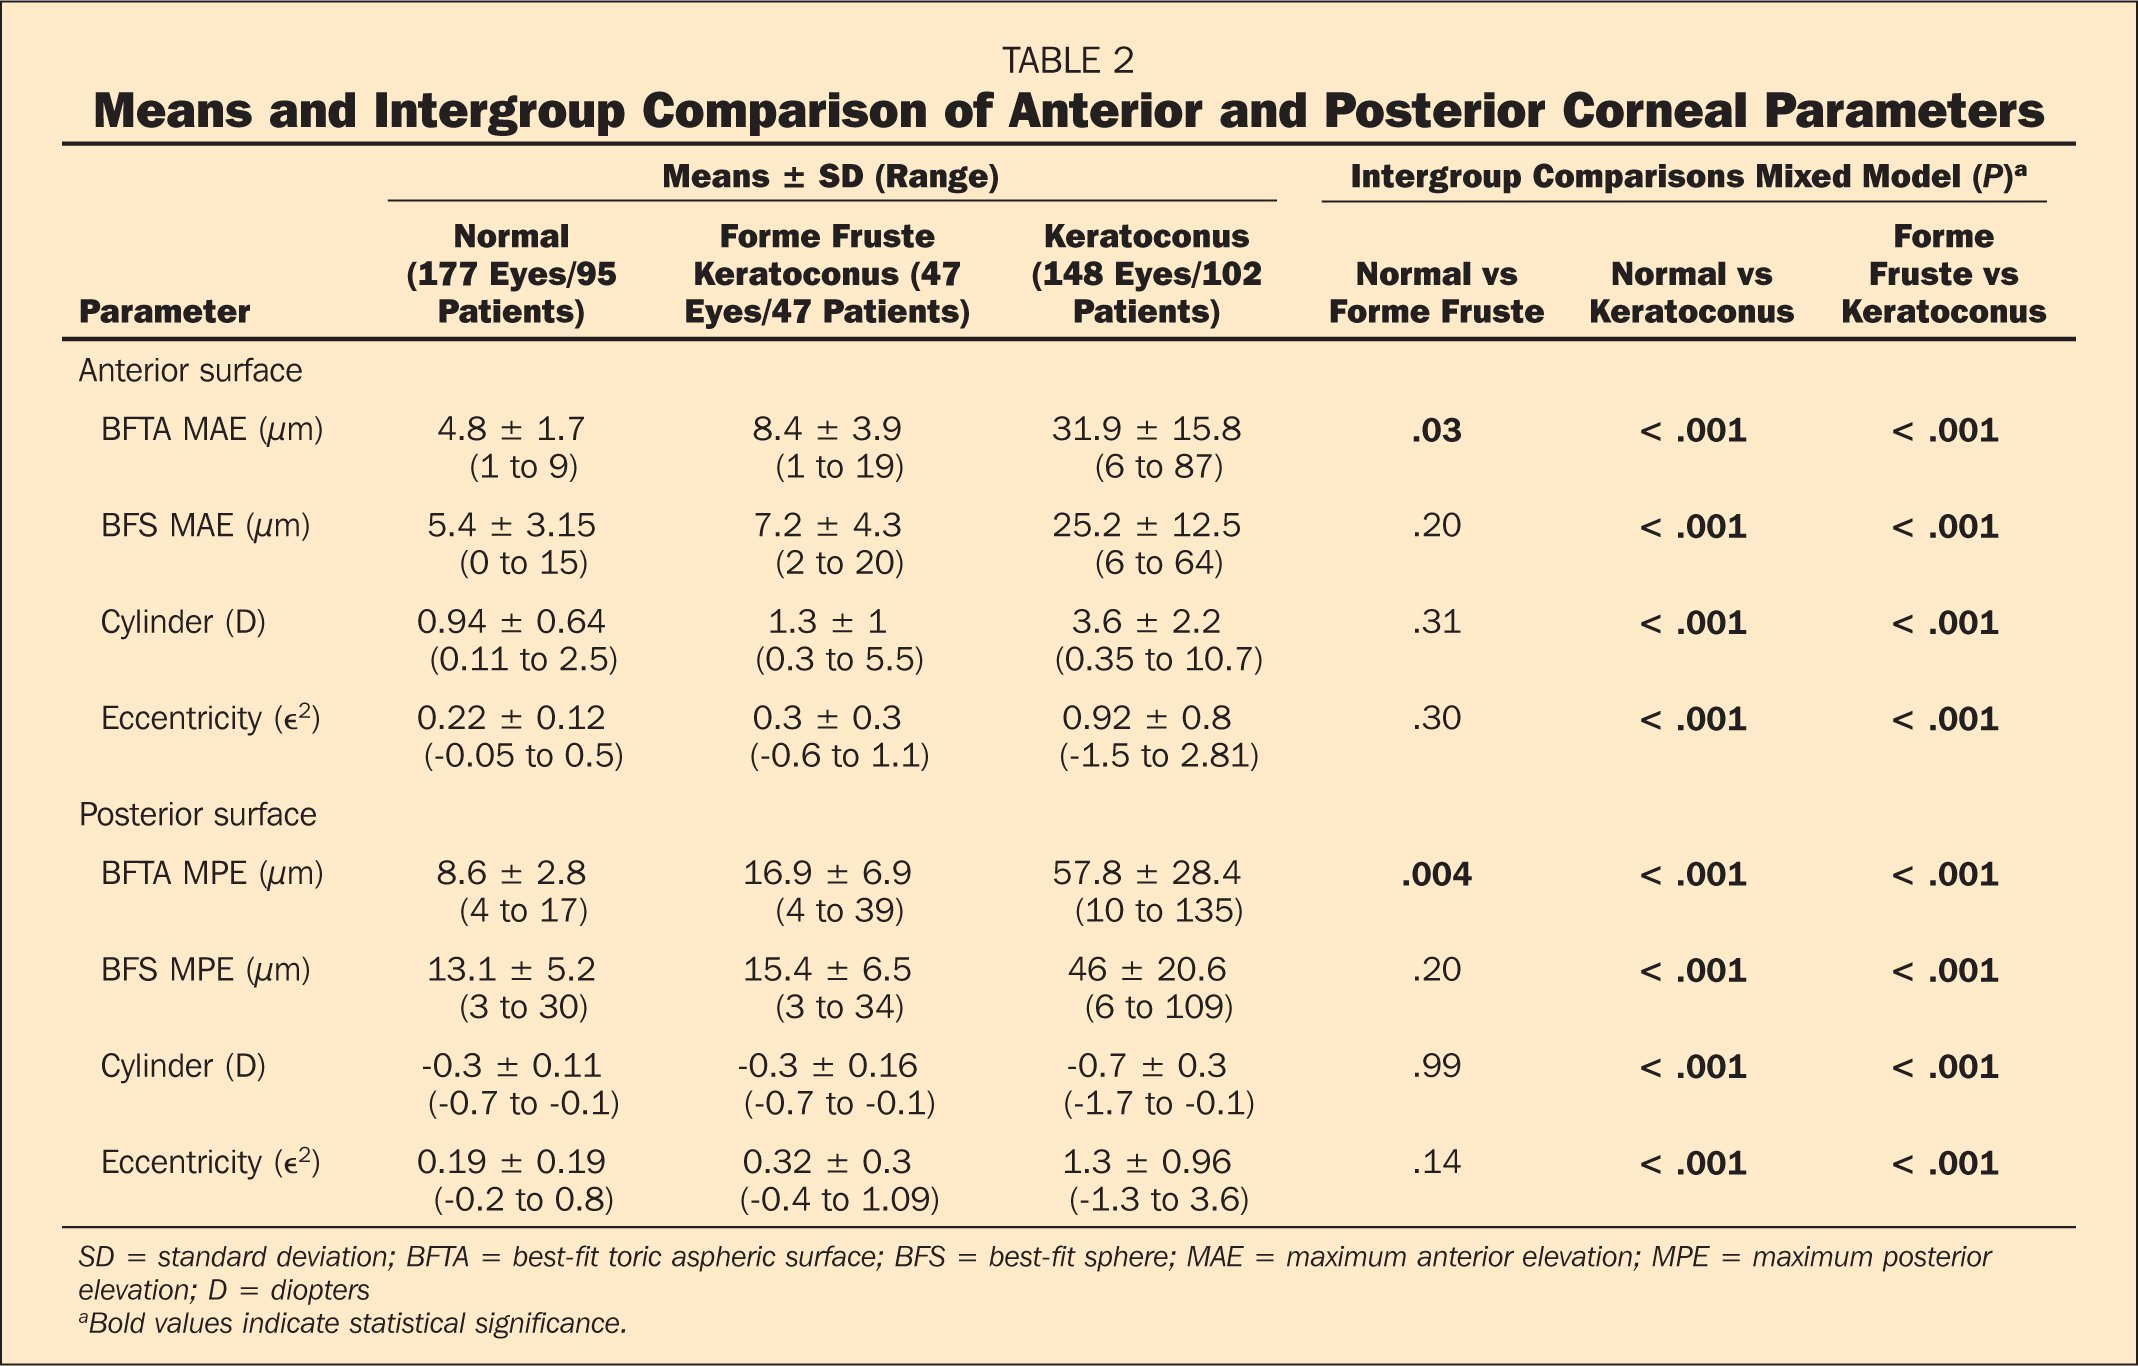 Means and Intergroup Comparison of Anterior and Posterior Corneal Parameters